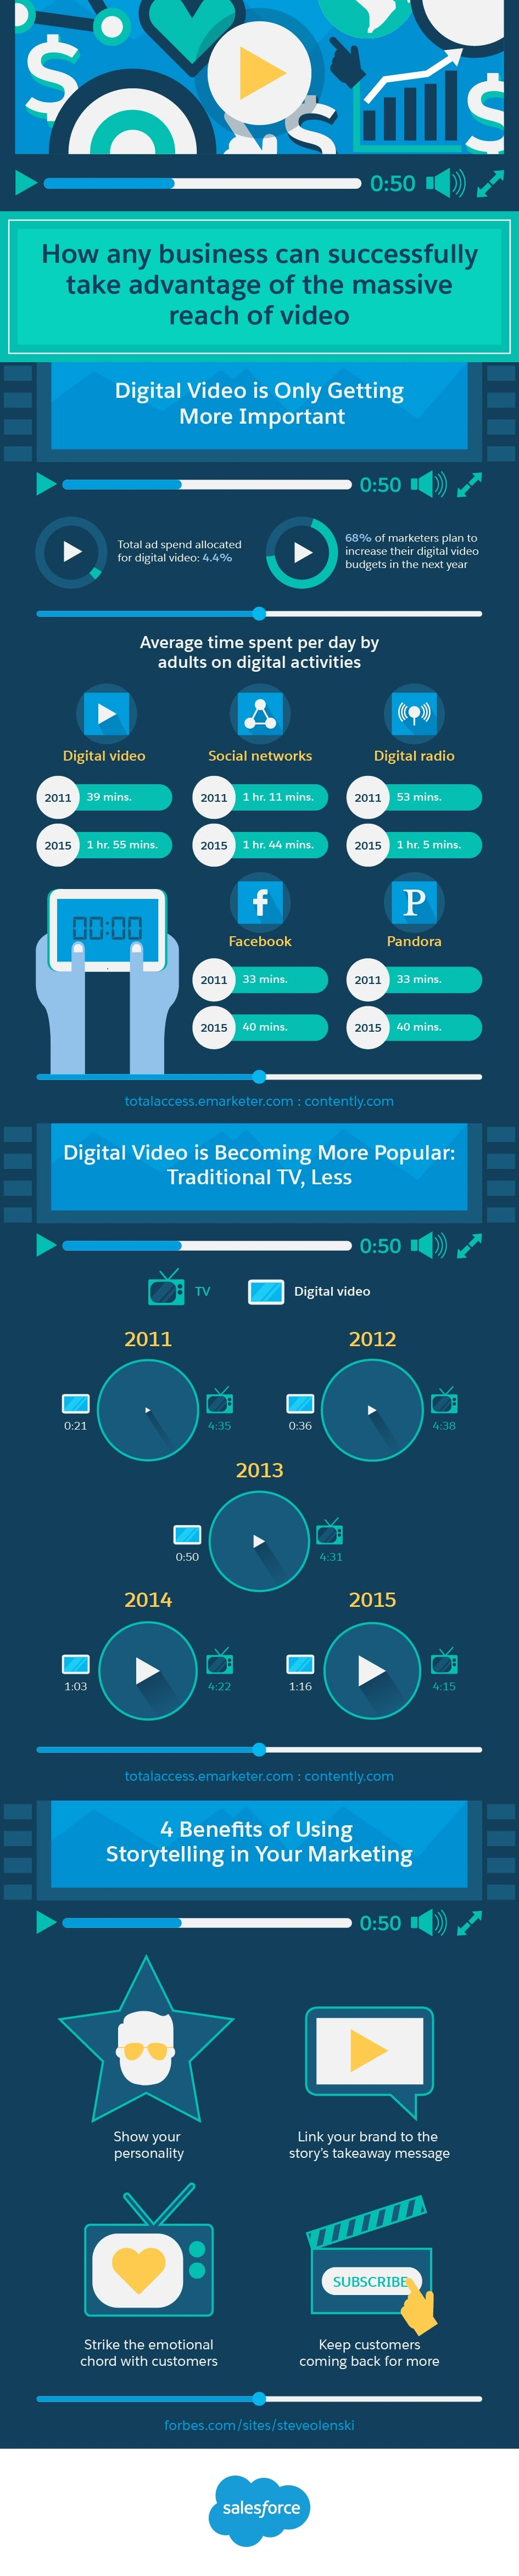 How Businesses Can Take Advantage of the Power of Video Marketing - #infographic